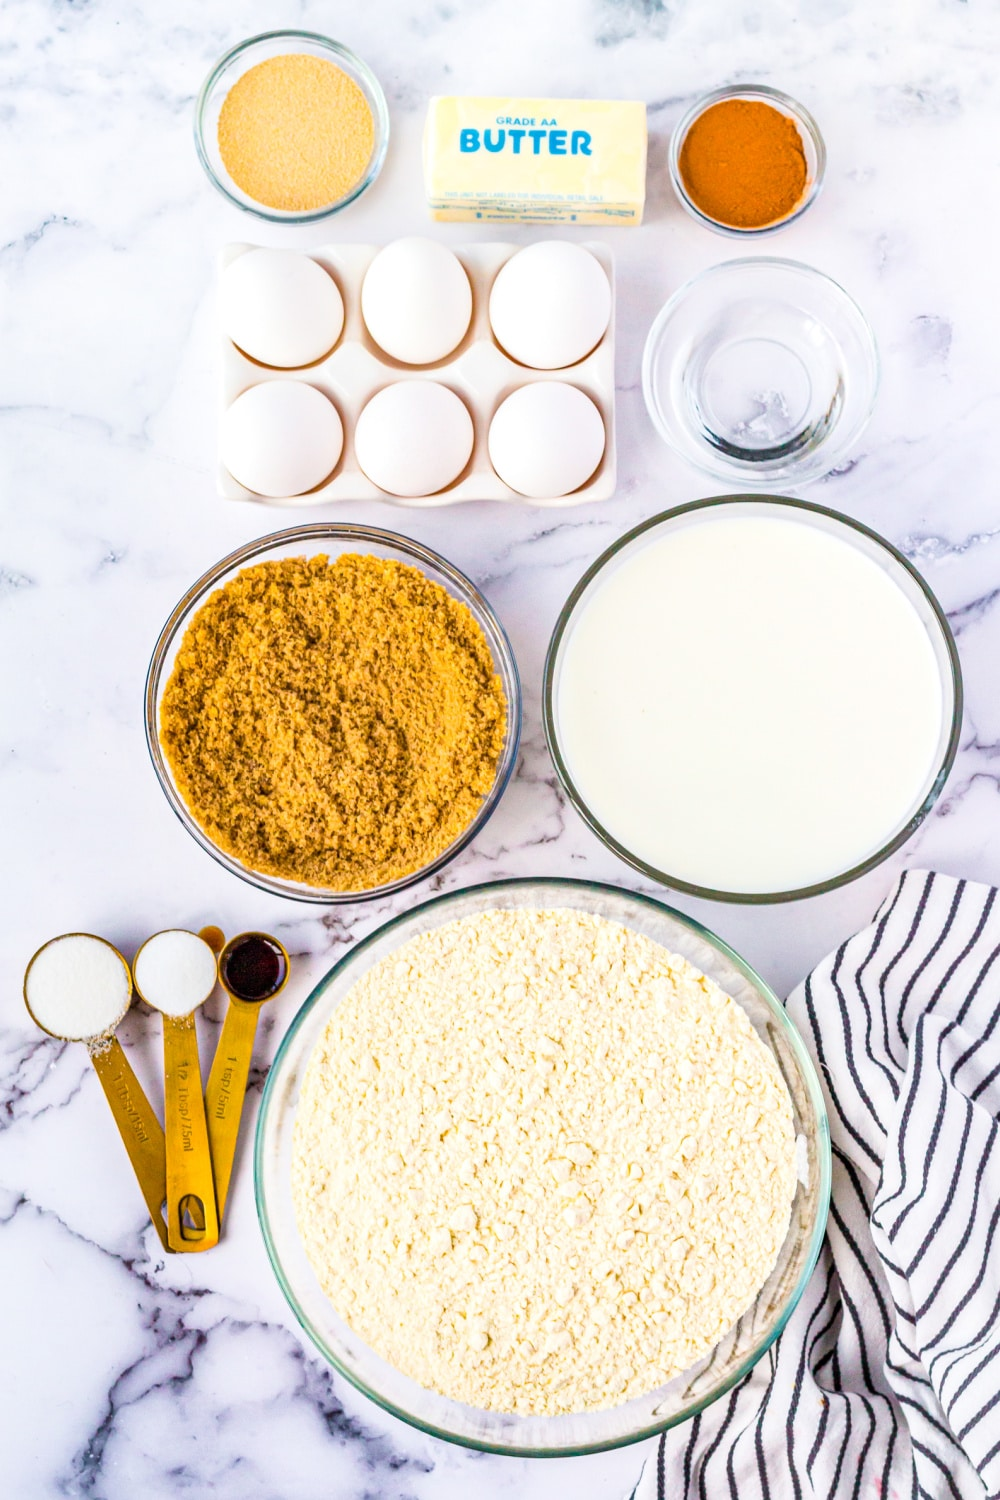 Ingredients needed to make this recipe separated in to clear bowls on a marble background.